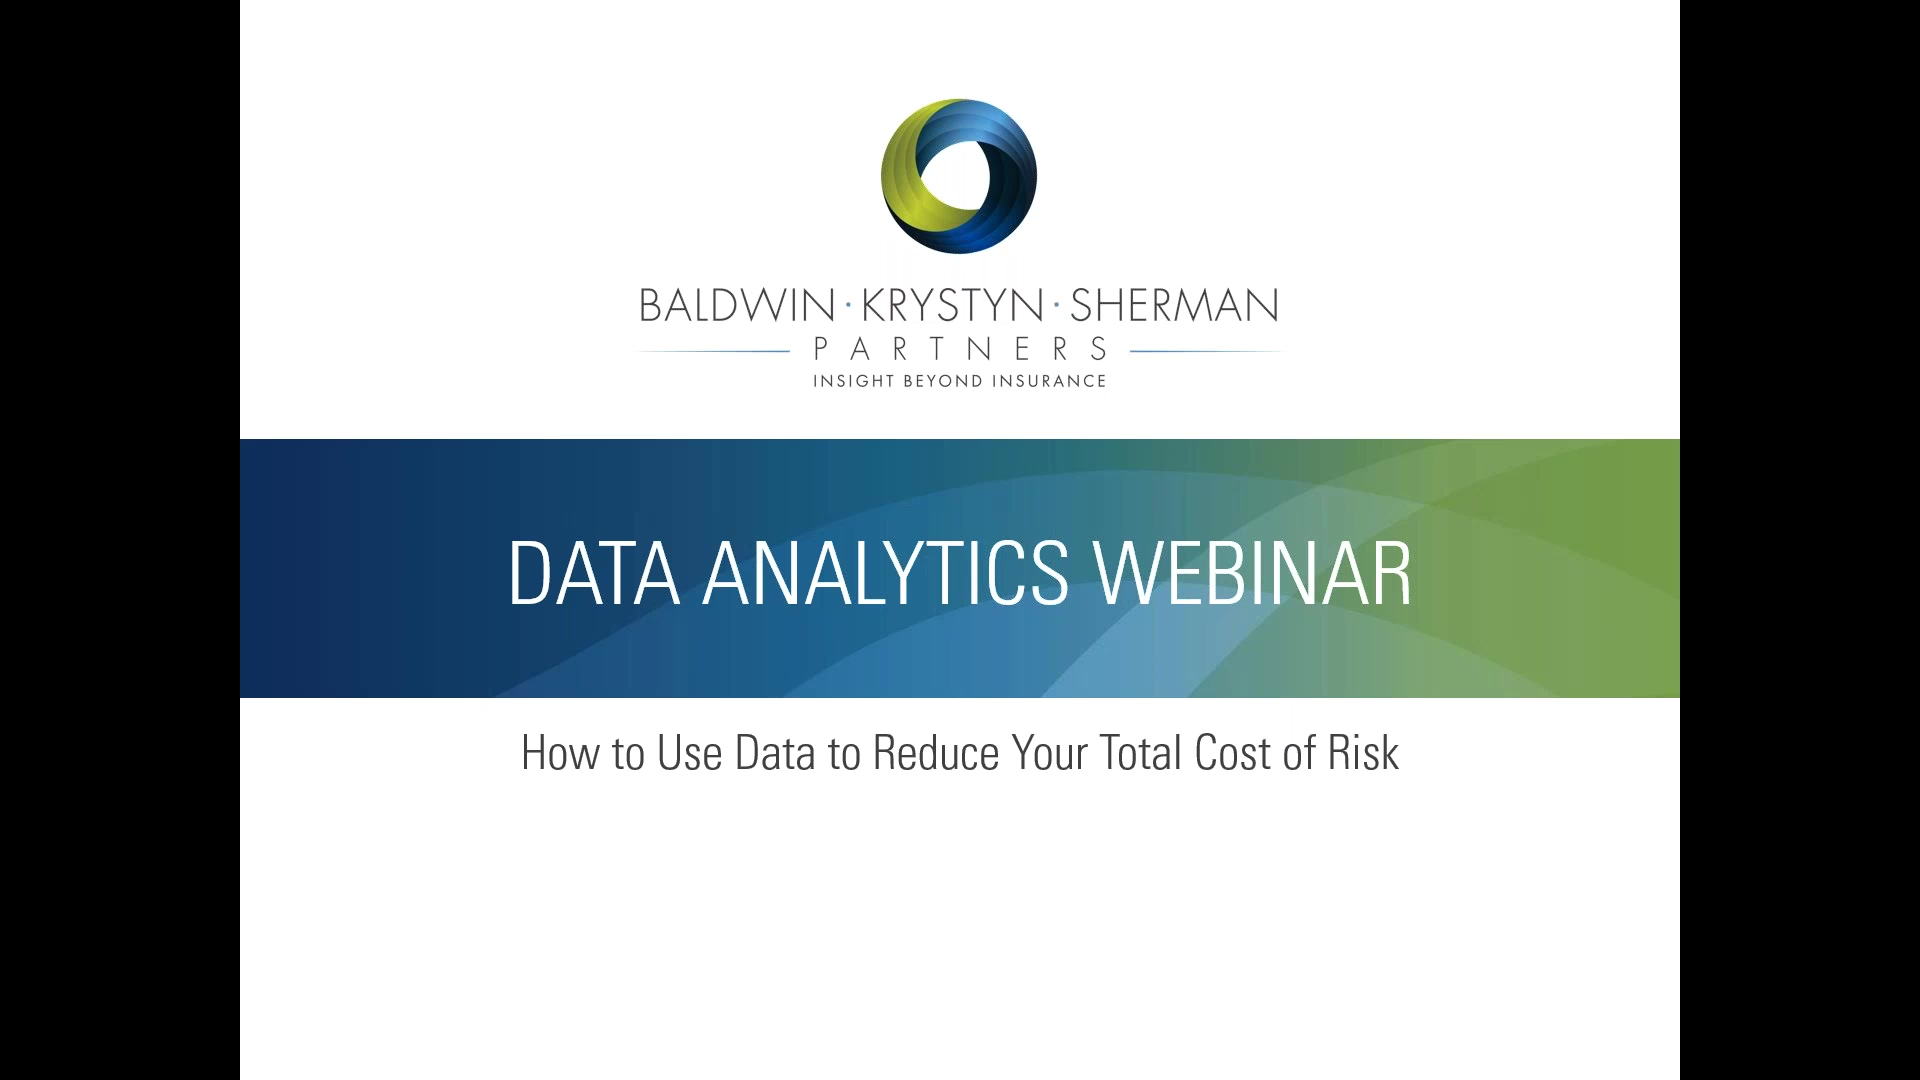 How to Use Data Analytics to Reduce Your Total Cost of Risk